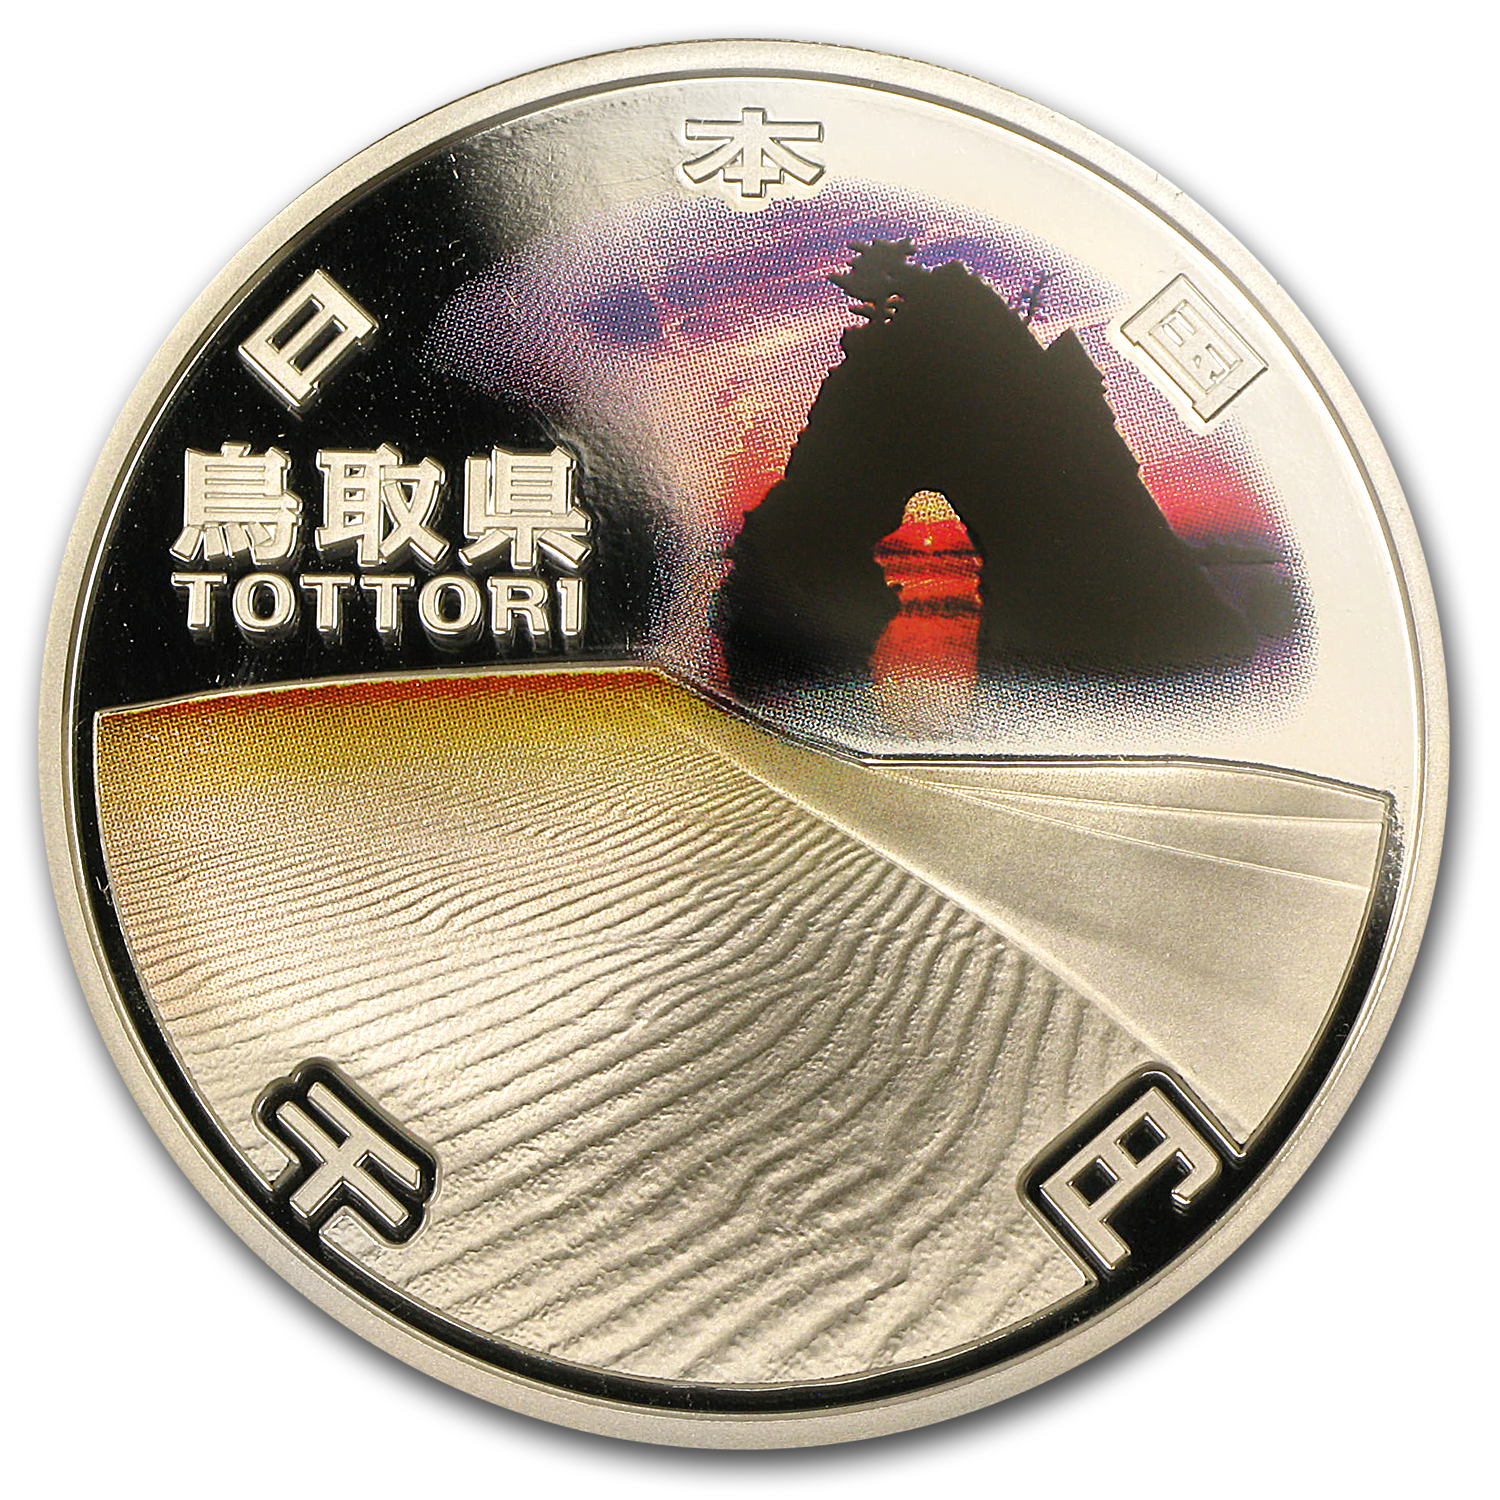 2011 Japan 1 oz Silver 1000 Yen Tottori 15/47 Prefectures Proof